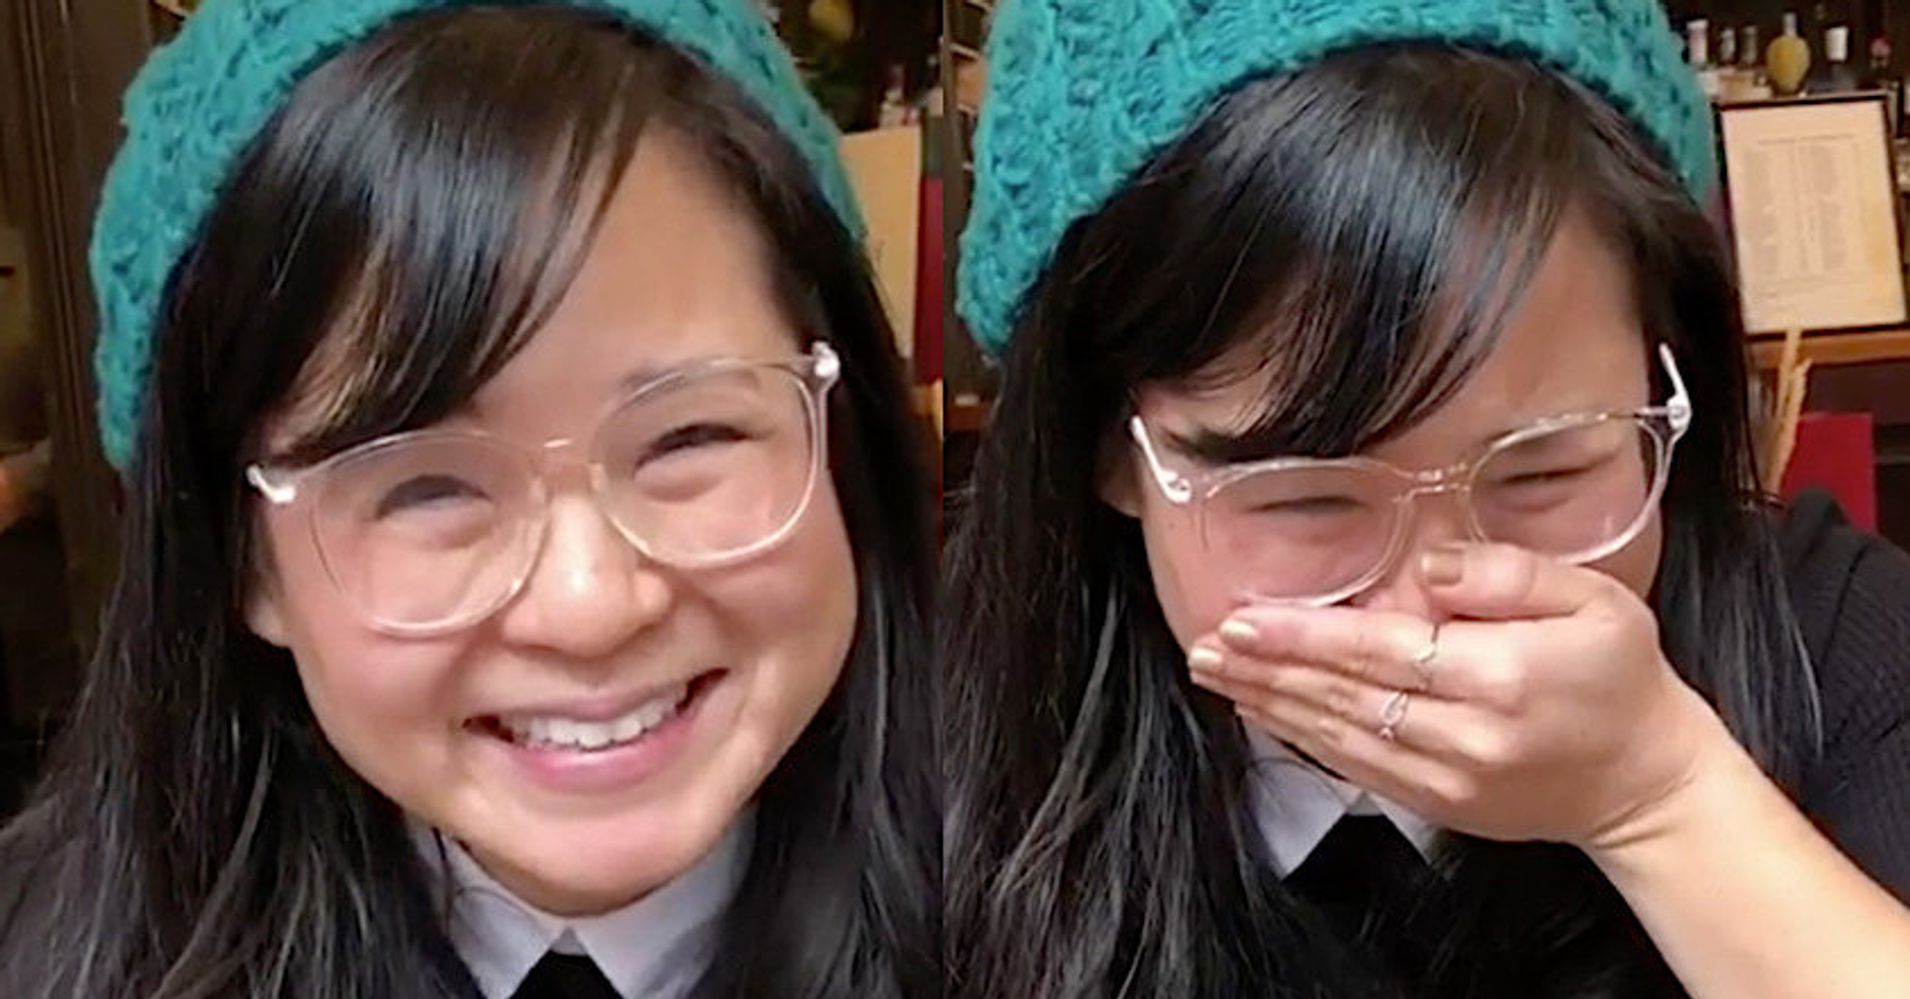 Kelly Marie Tran Overhears Fans Talking About Her, Has The Sweetest Response